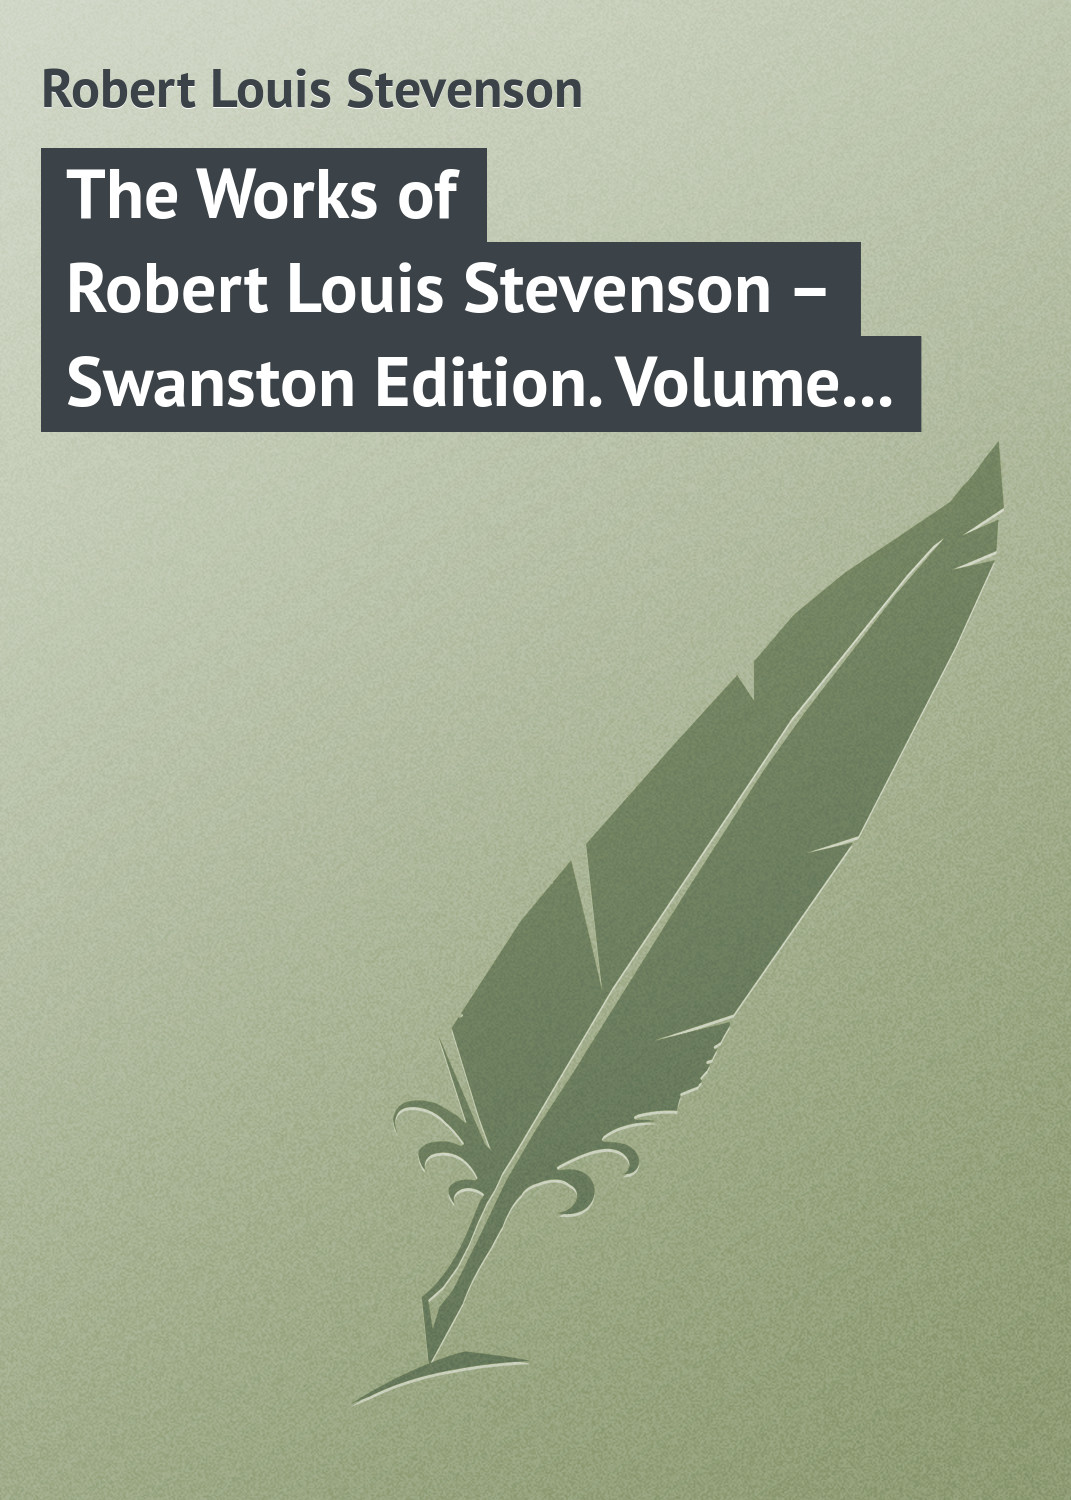 Роберт Льюис Стивенсон The Works of Robert Louis Stevenson – Swanston Edition. Volume 17 кабель гитарный schulz bum 5 m прямой угловой